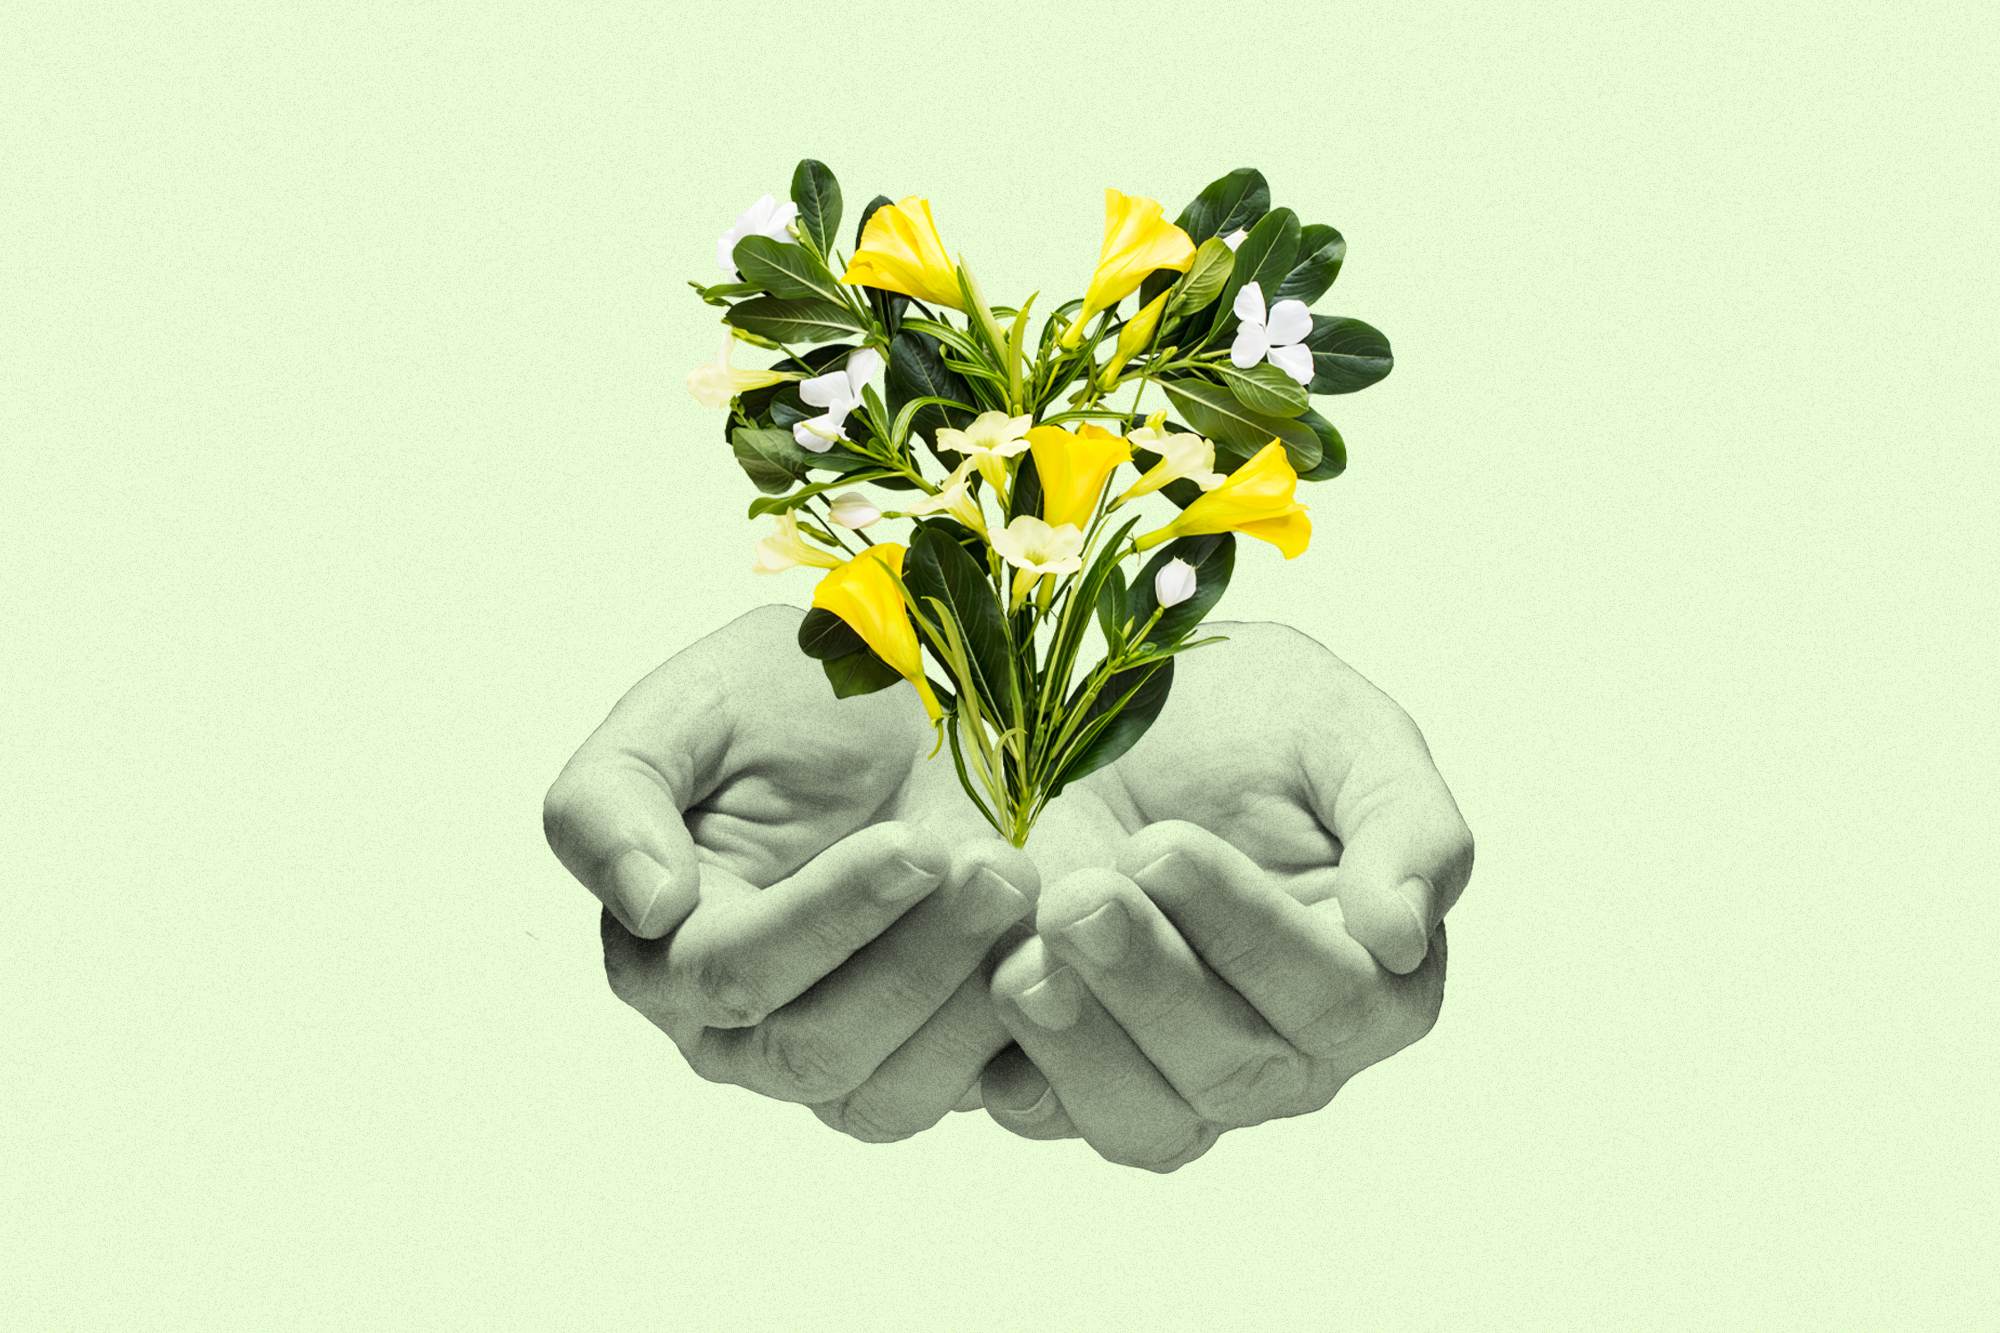 two cupped hands under a heart made of flowers on a green background